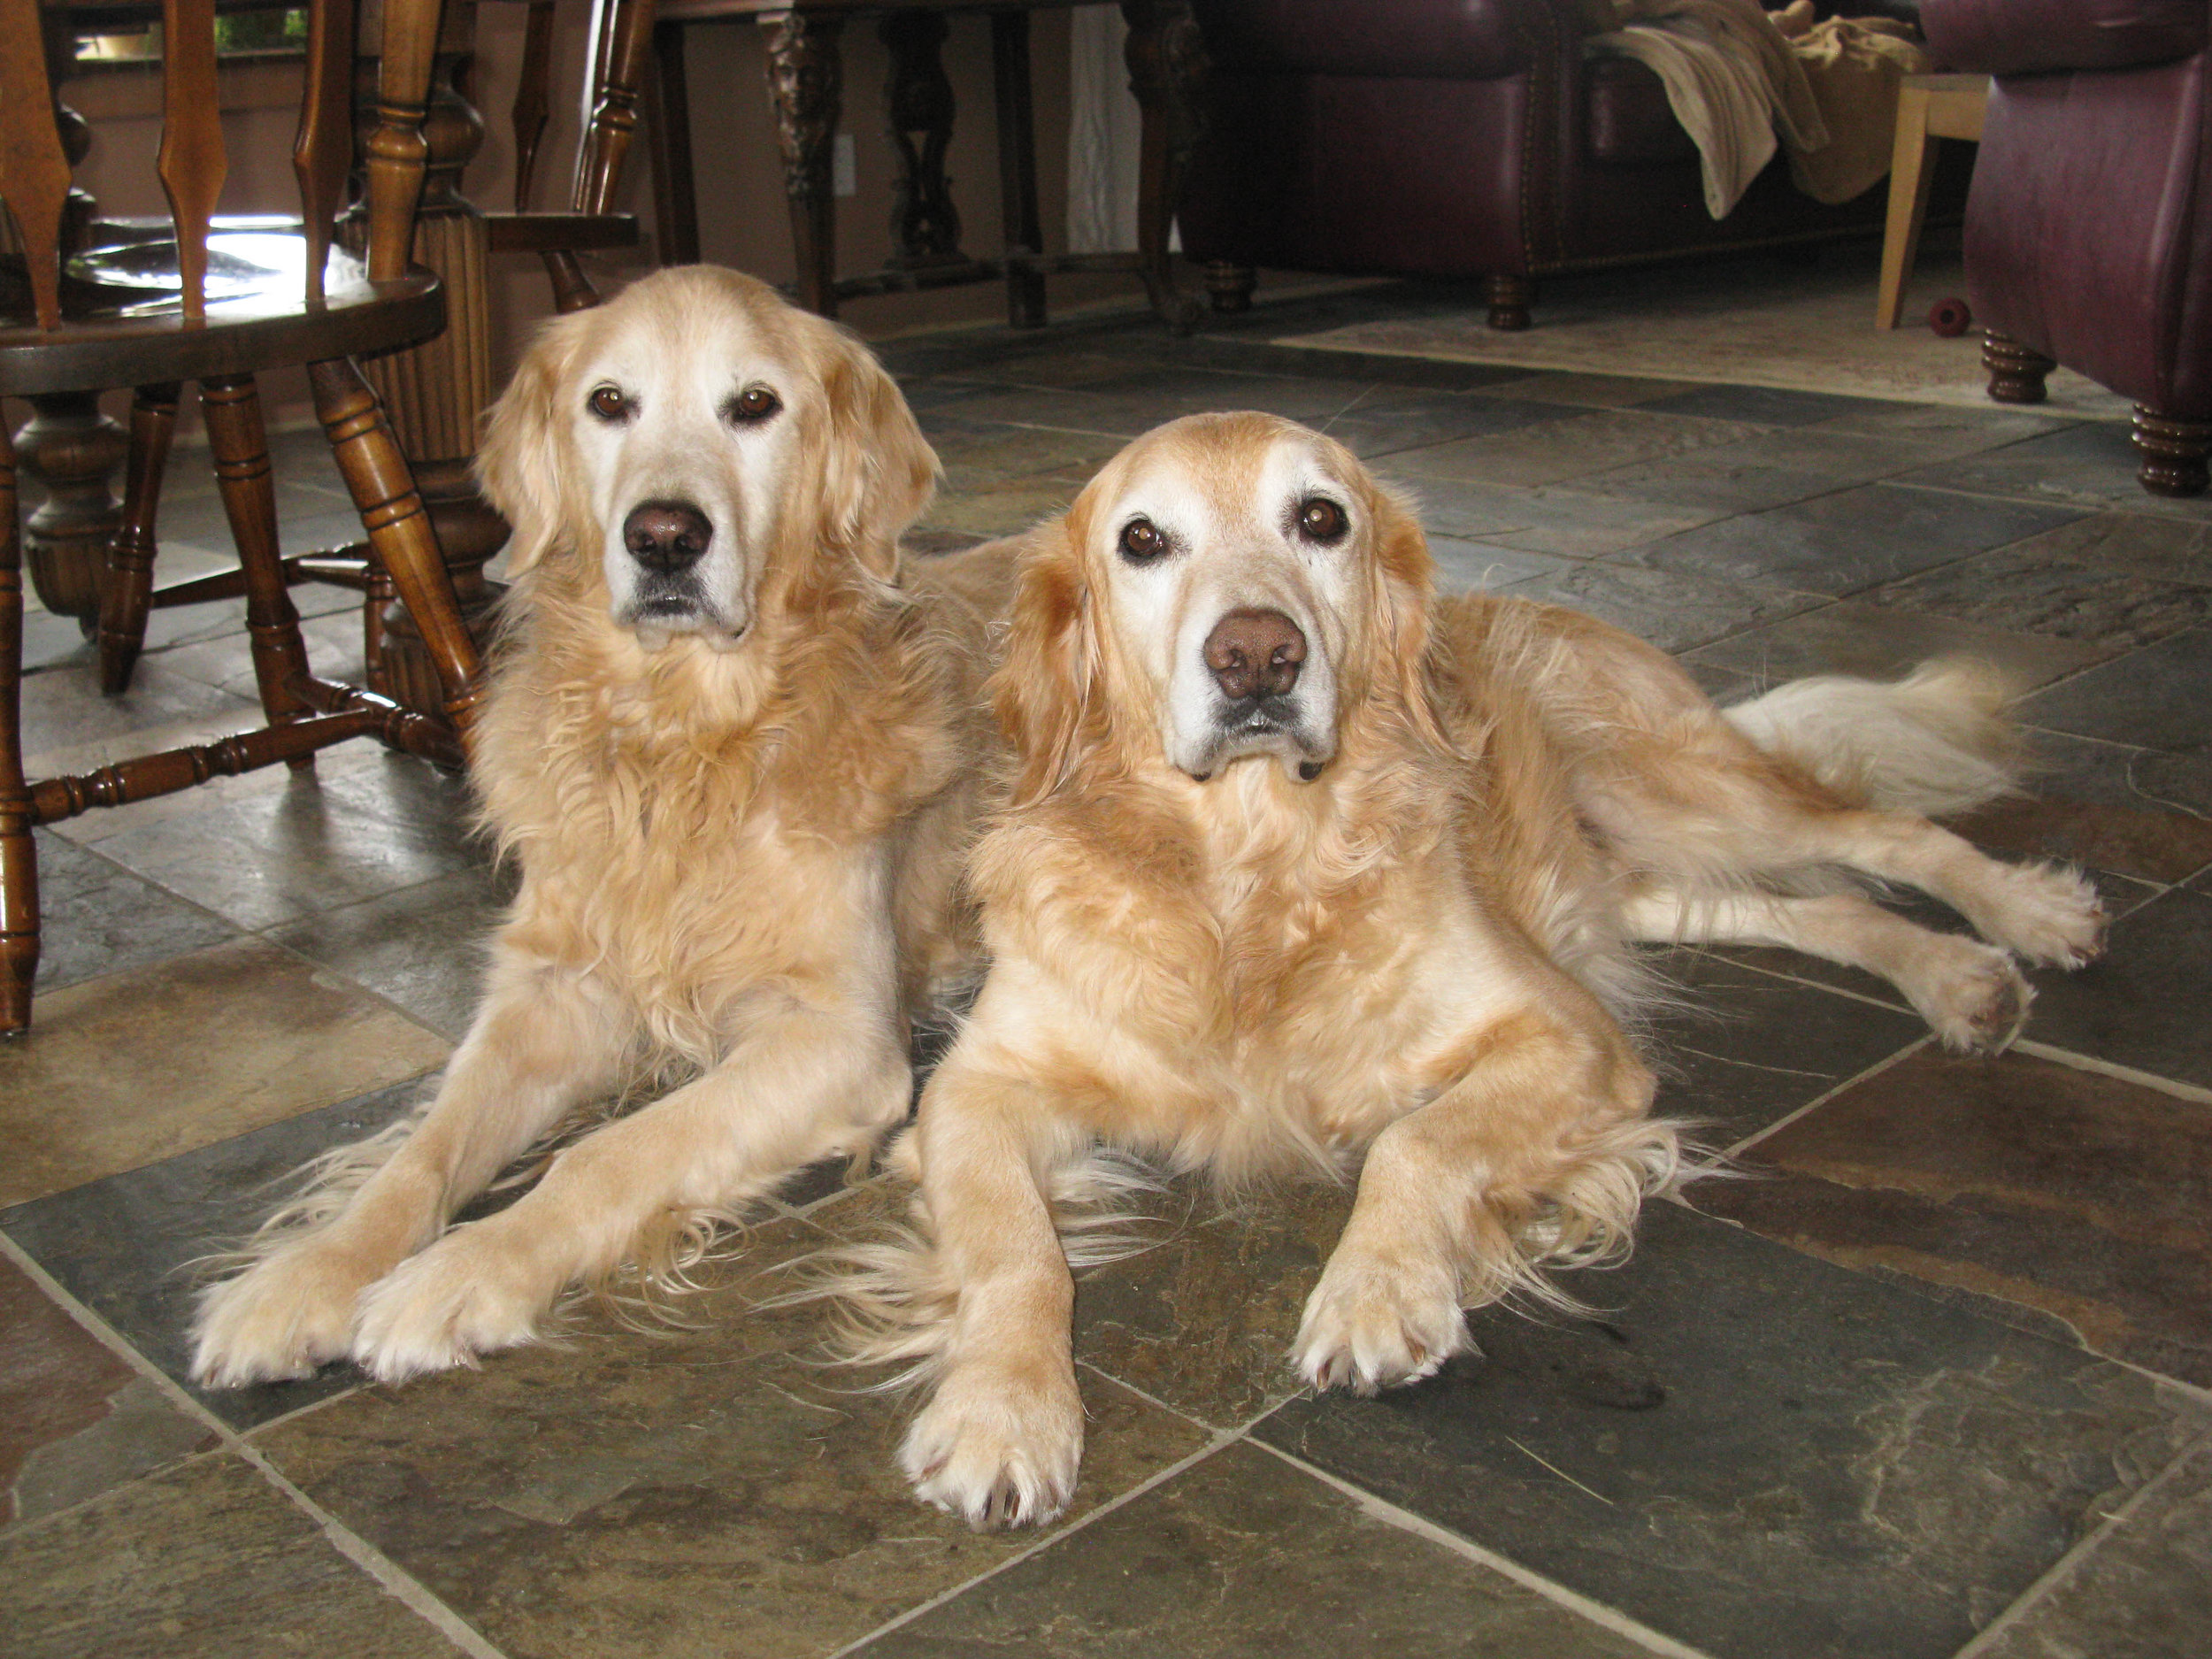 A well-trained dog is a joy to live with. Daisy and Buddy.